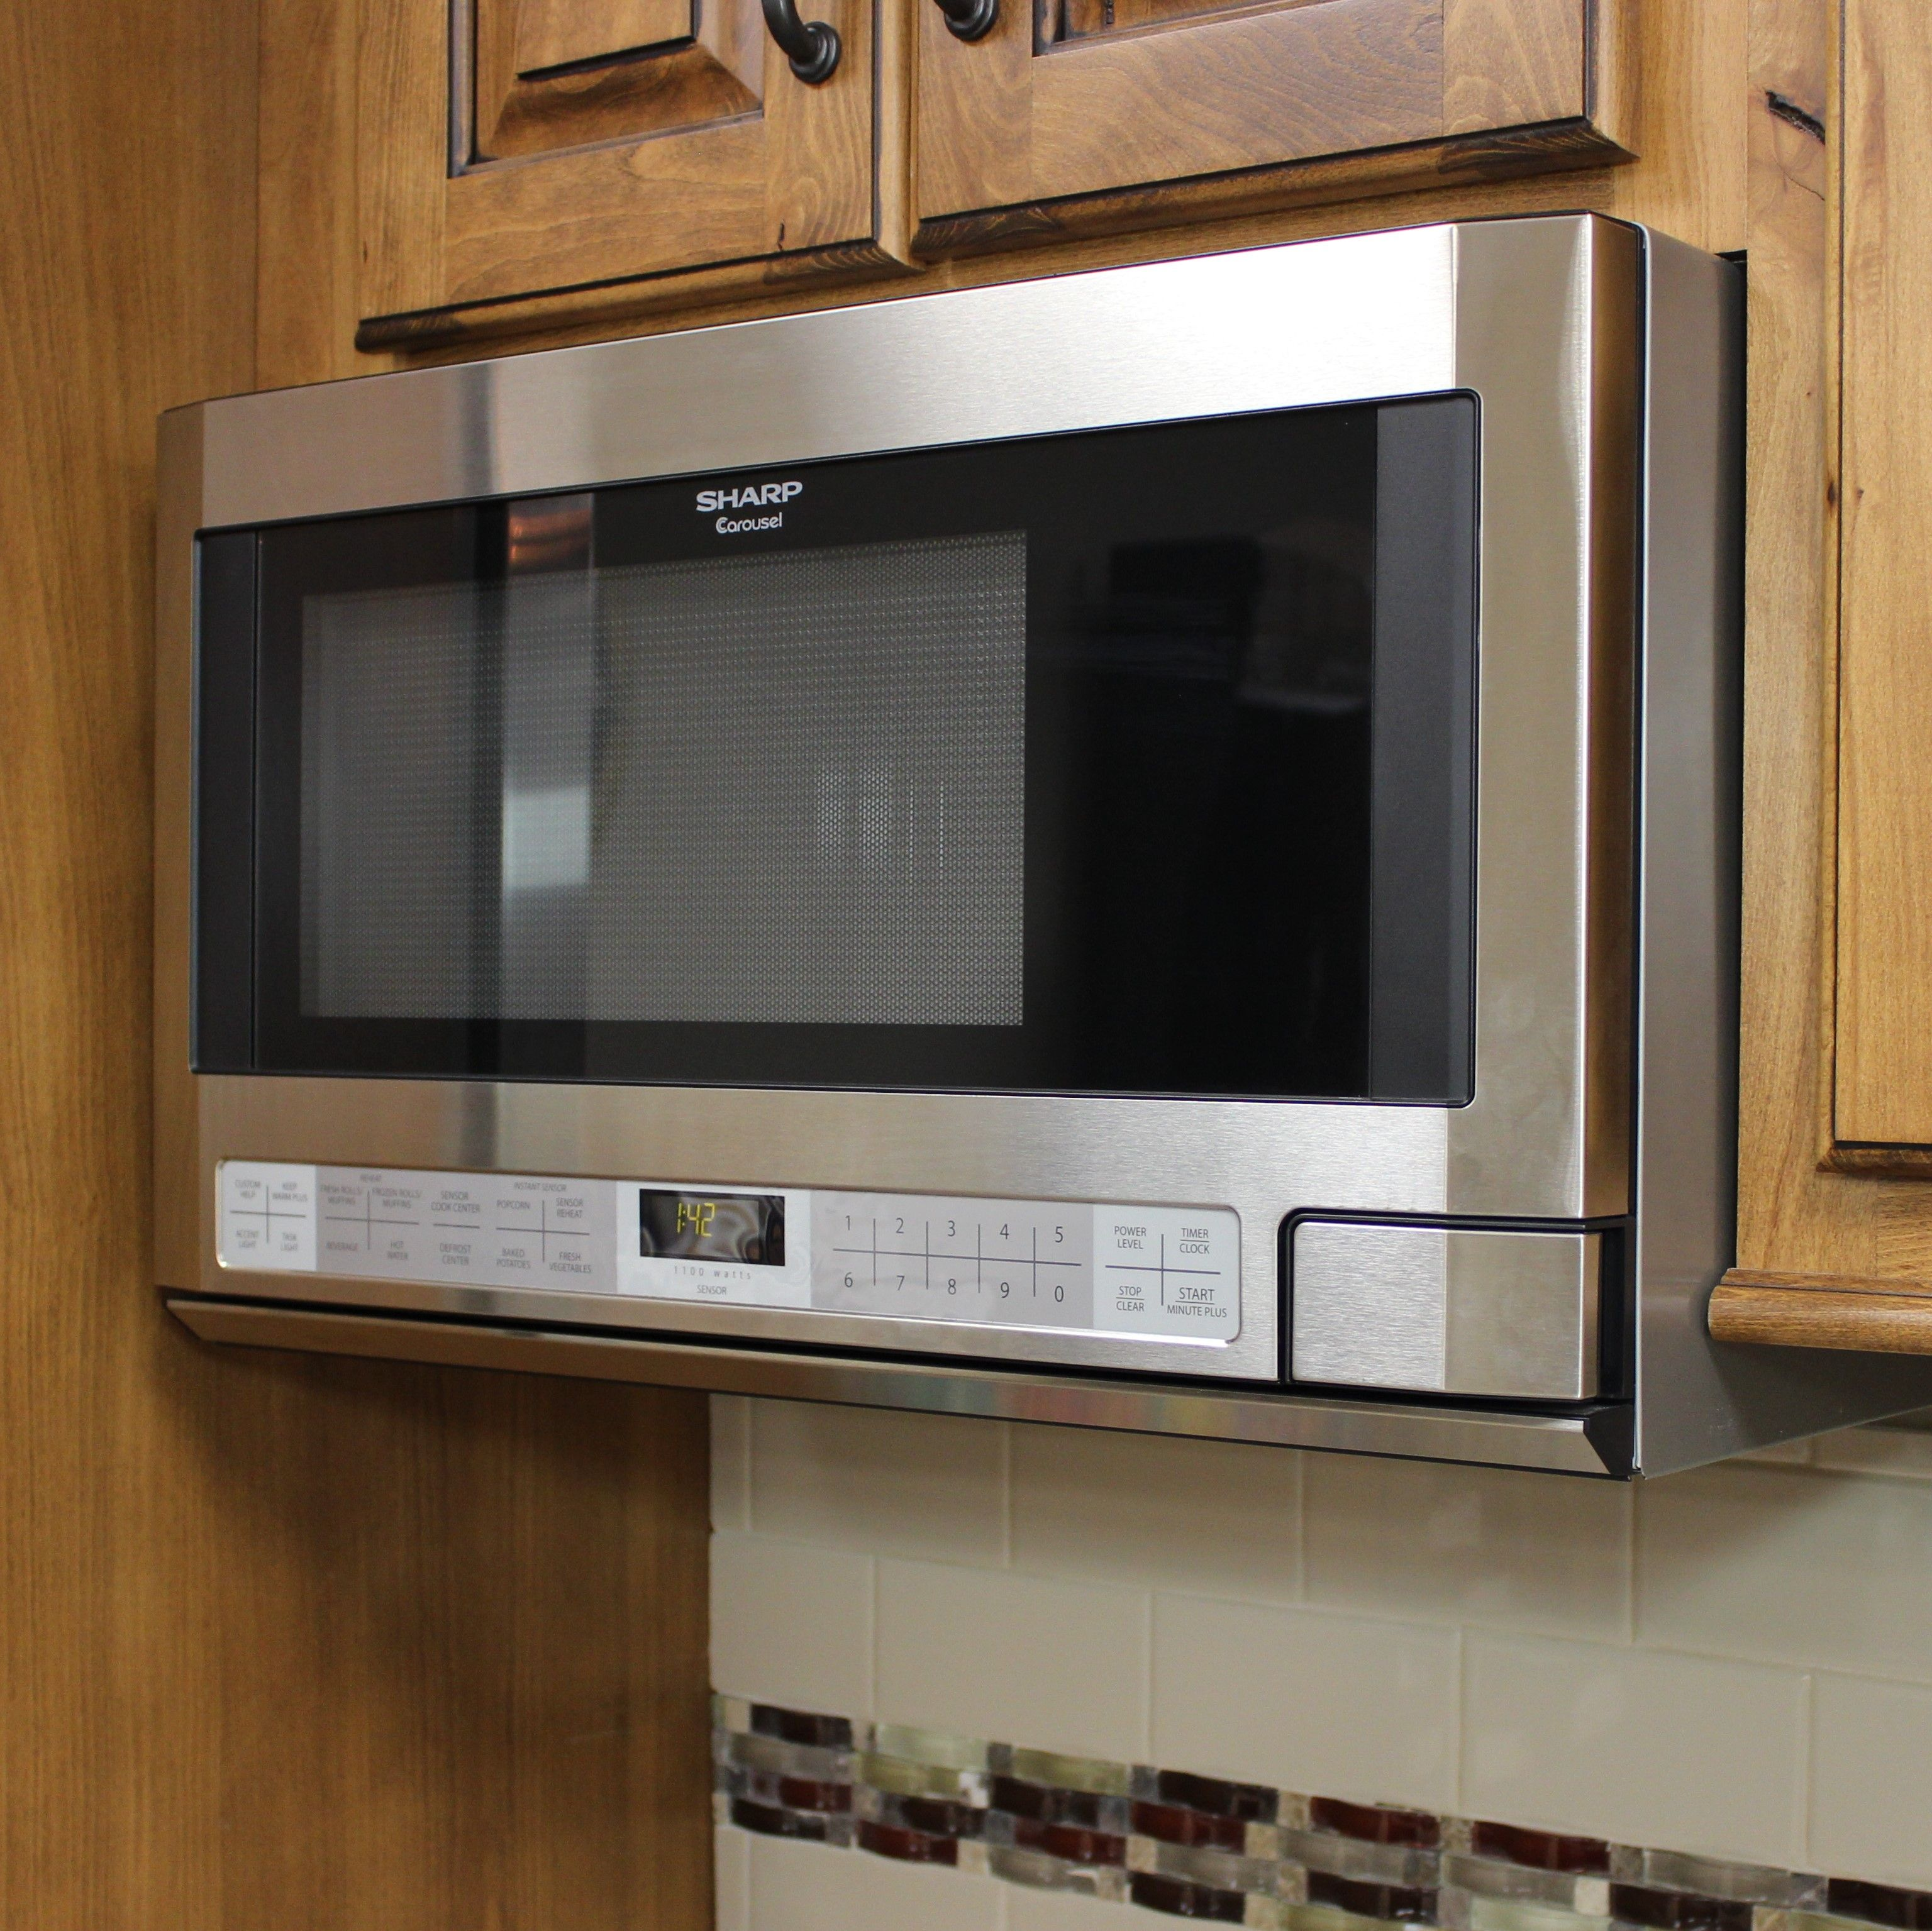 This Sharp Over The Counter Model #microwave Allows For A Built In